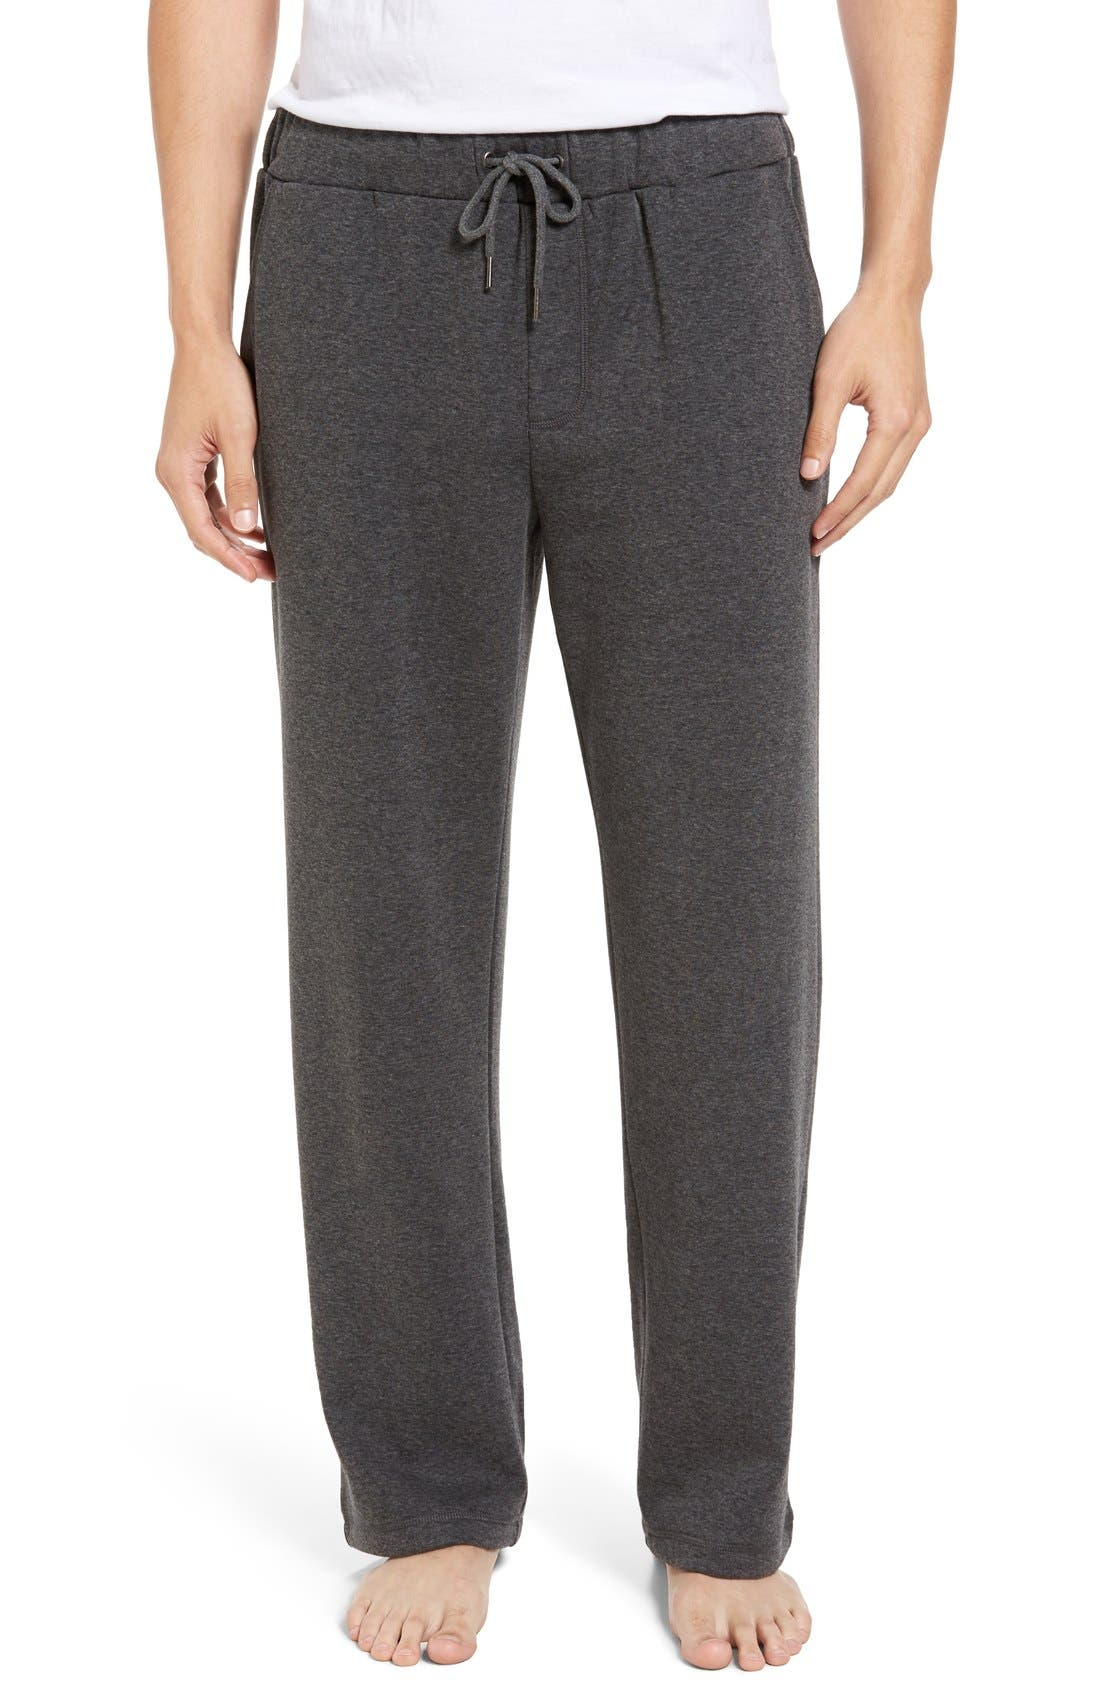 Fleece Lounge Pants,                         Main,                         color, Grey Heather